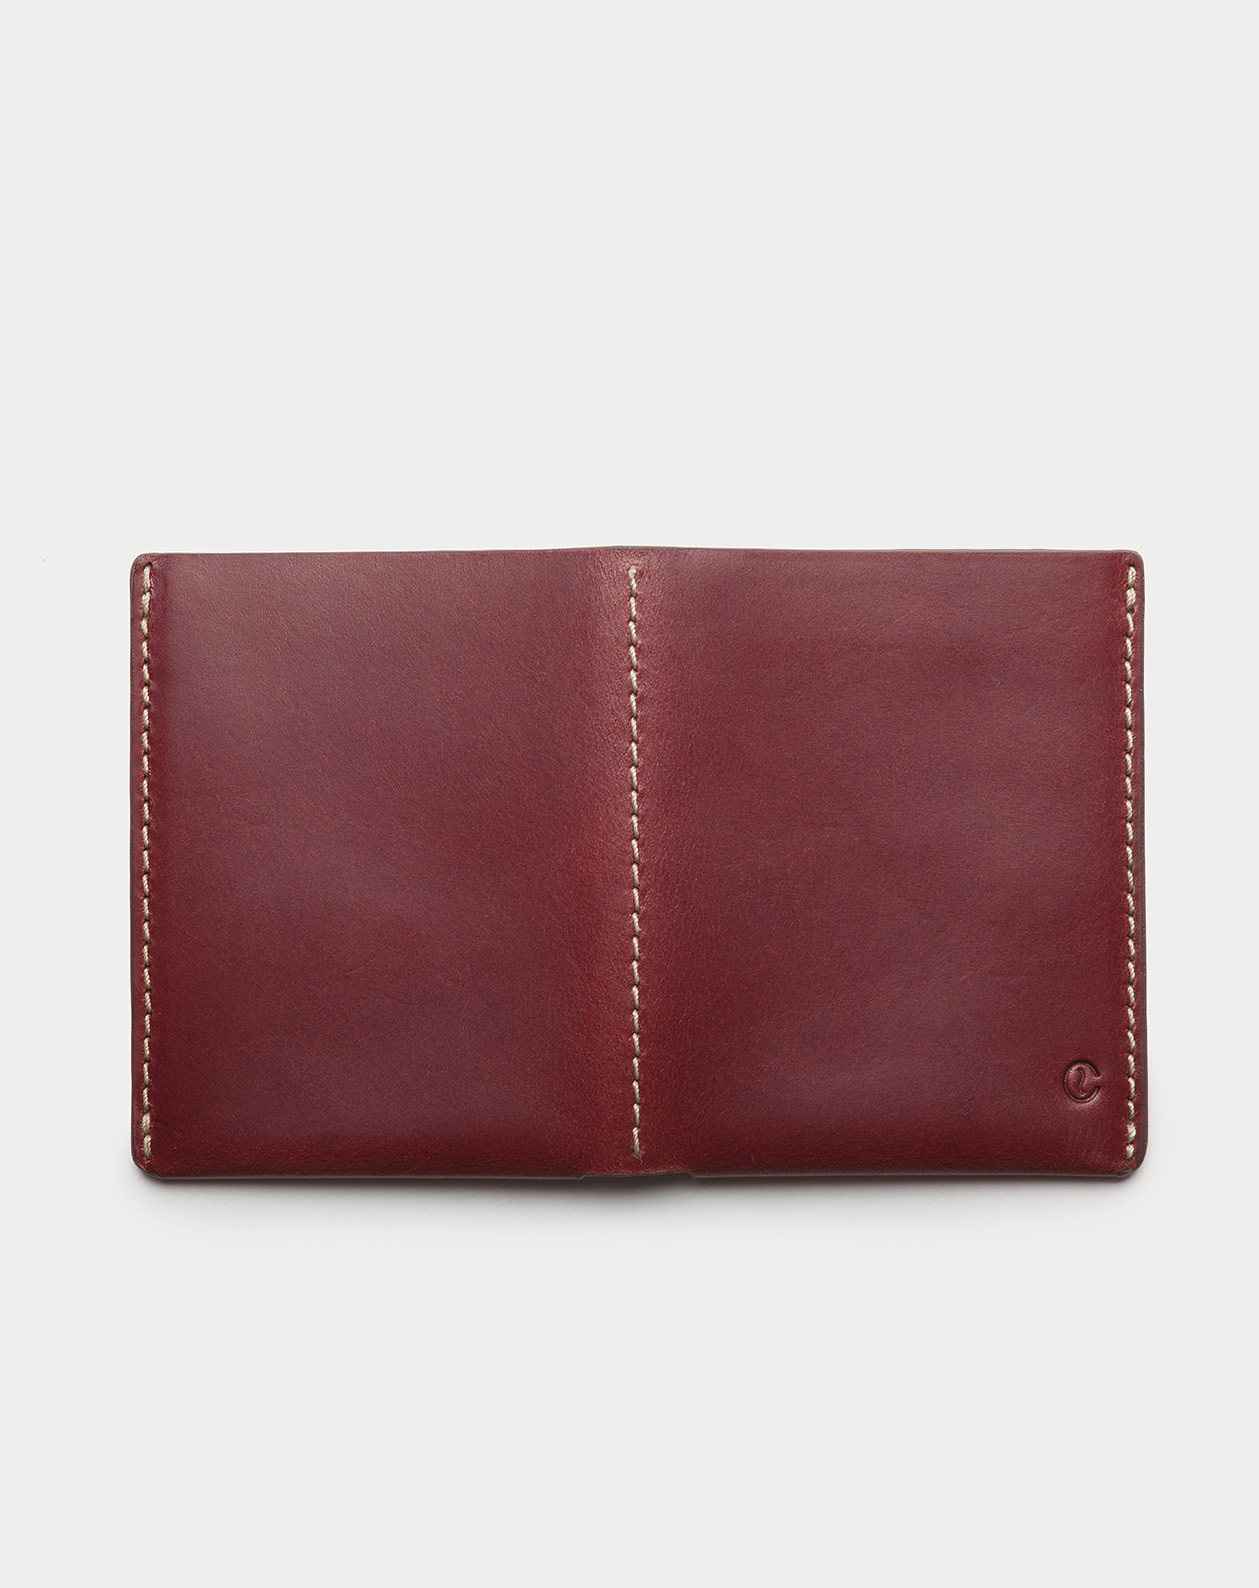 Ultra Slim Leather Wallet Jamaica Berry 4